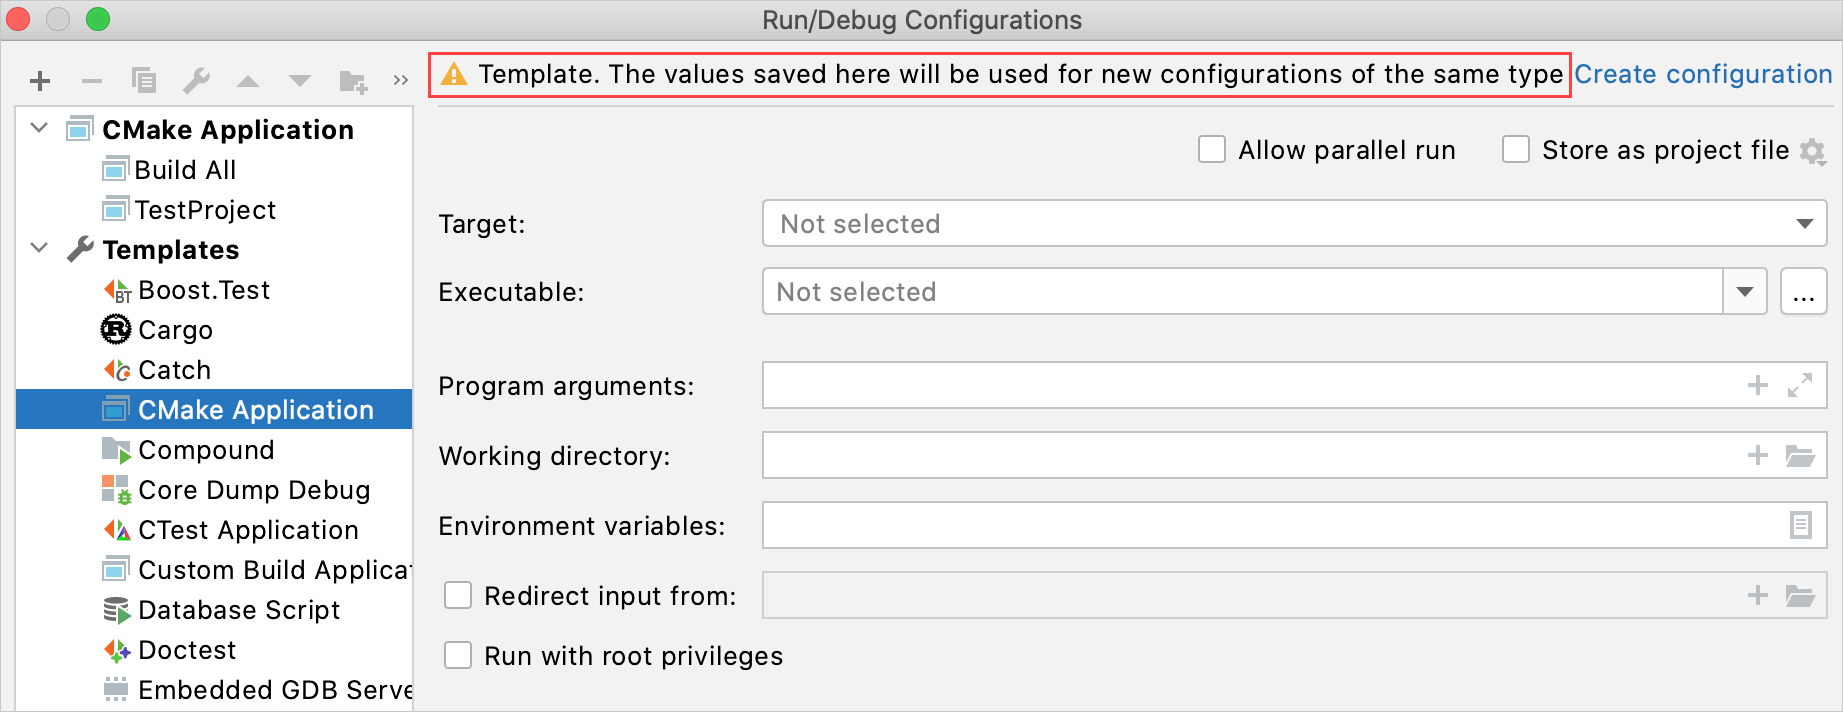 Editing a configuration template